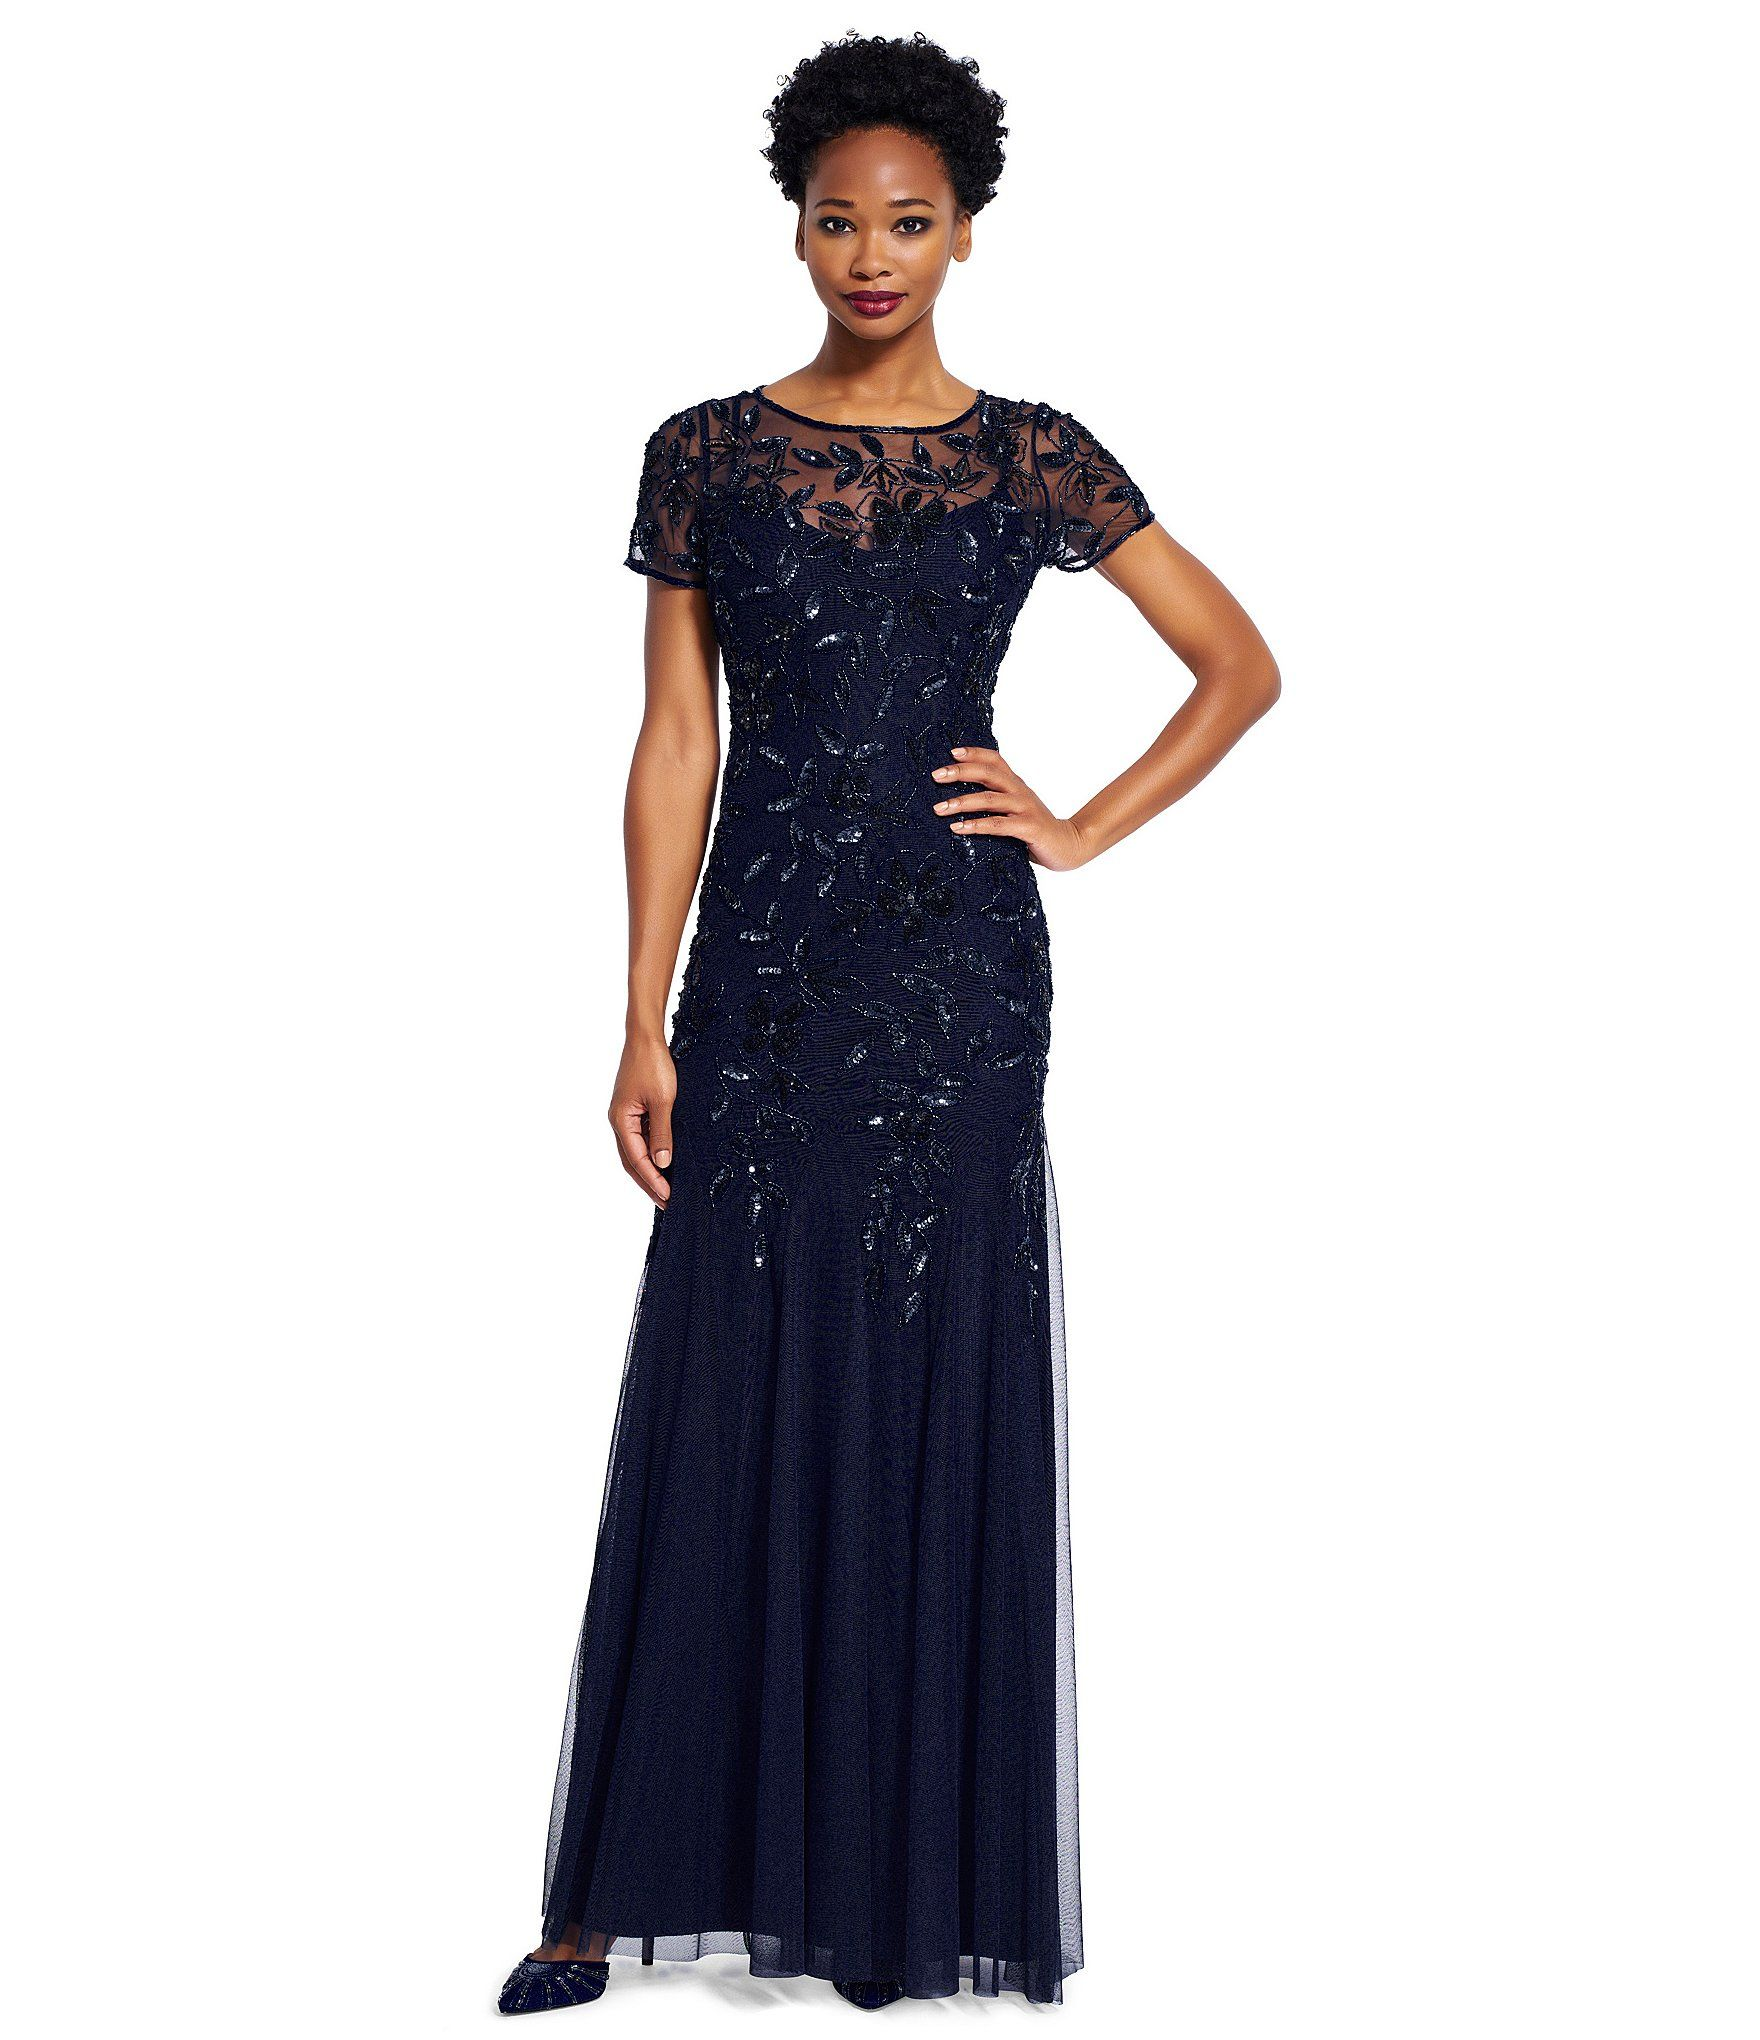 Adrianna Papell Floral Beaded Gown Dillards Adrianna Papell And